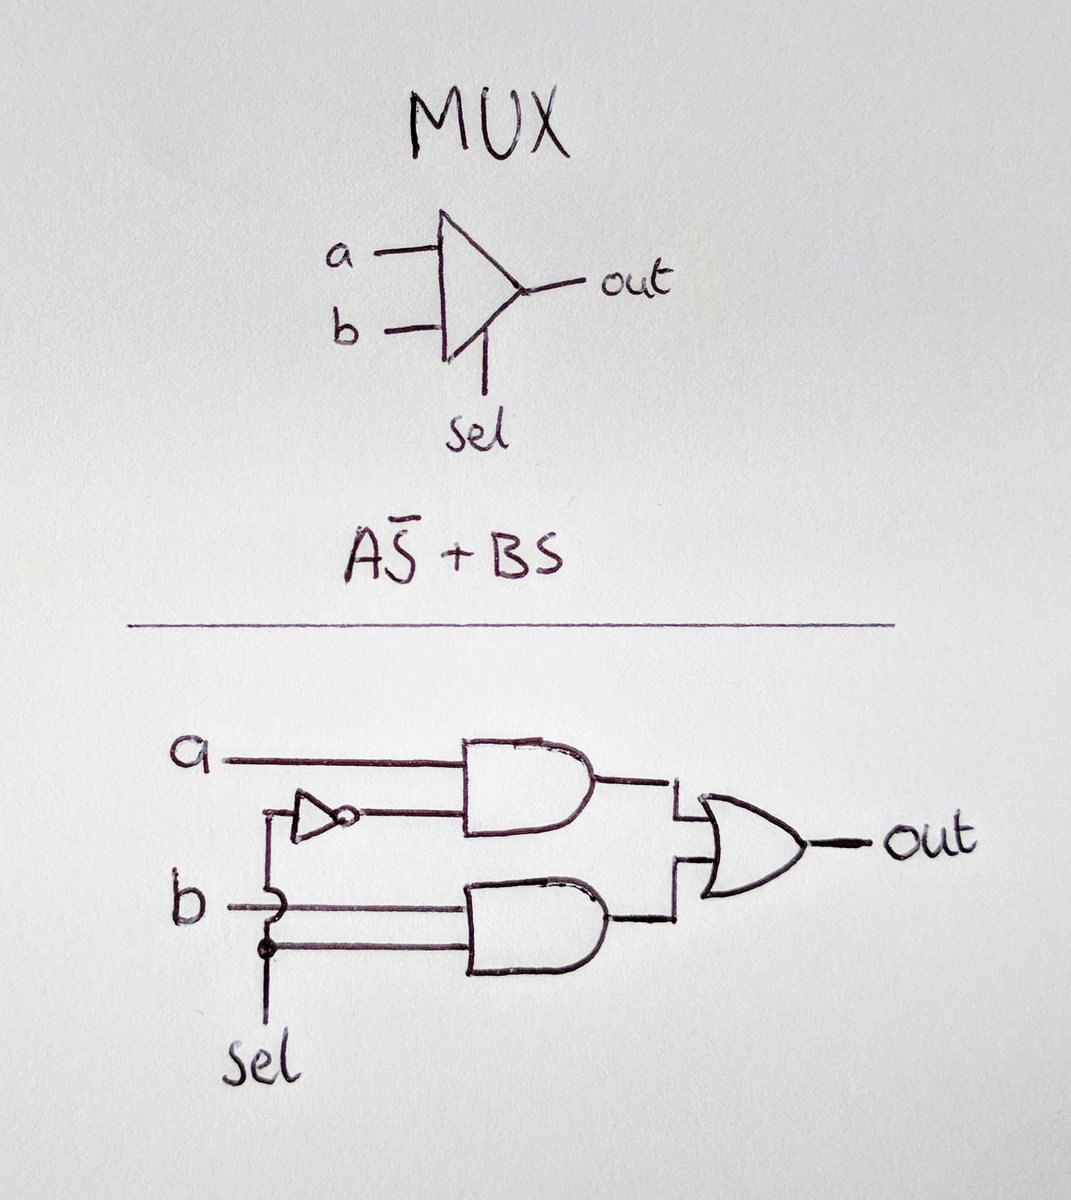 Simplified Mux circuit diagram